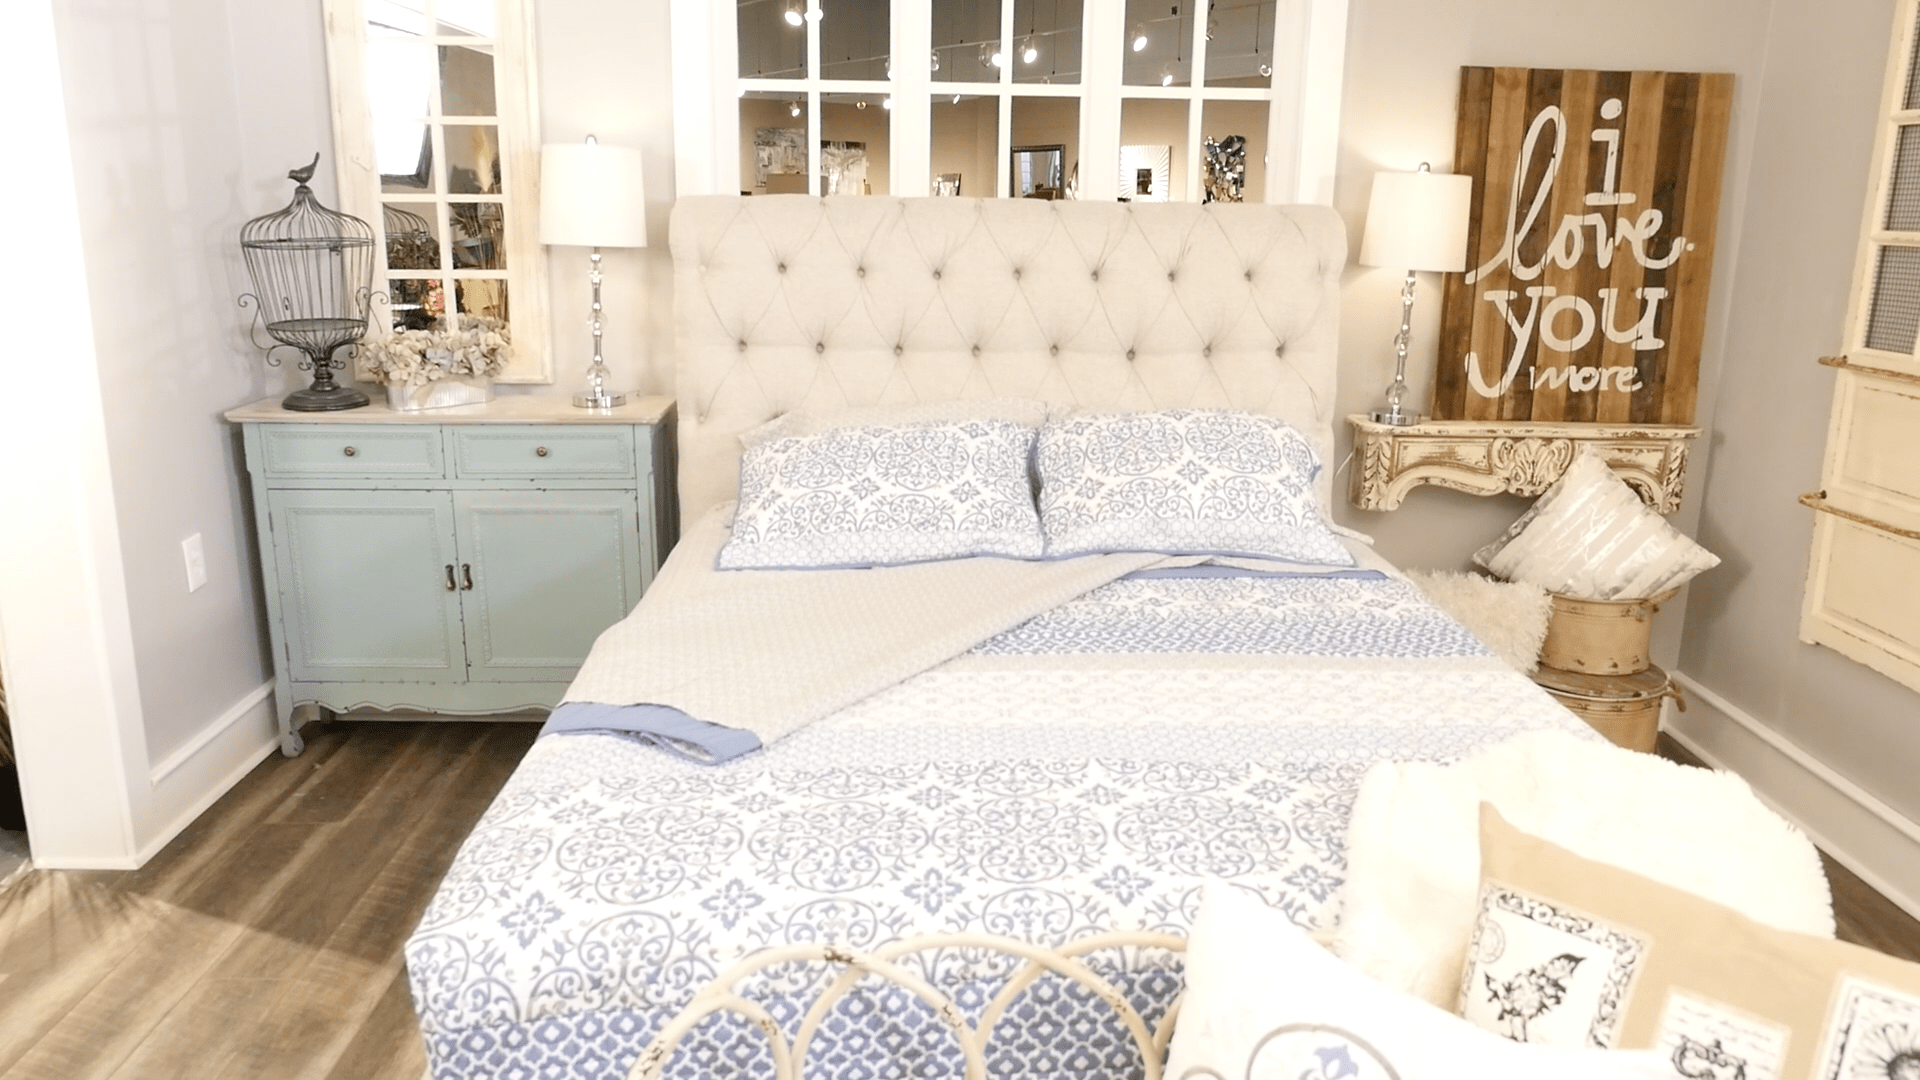 Shabby chic bedroom with upholstered bed